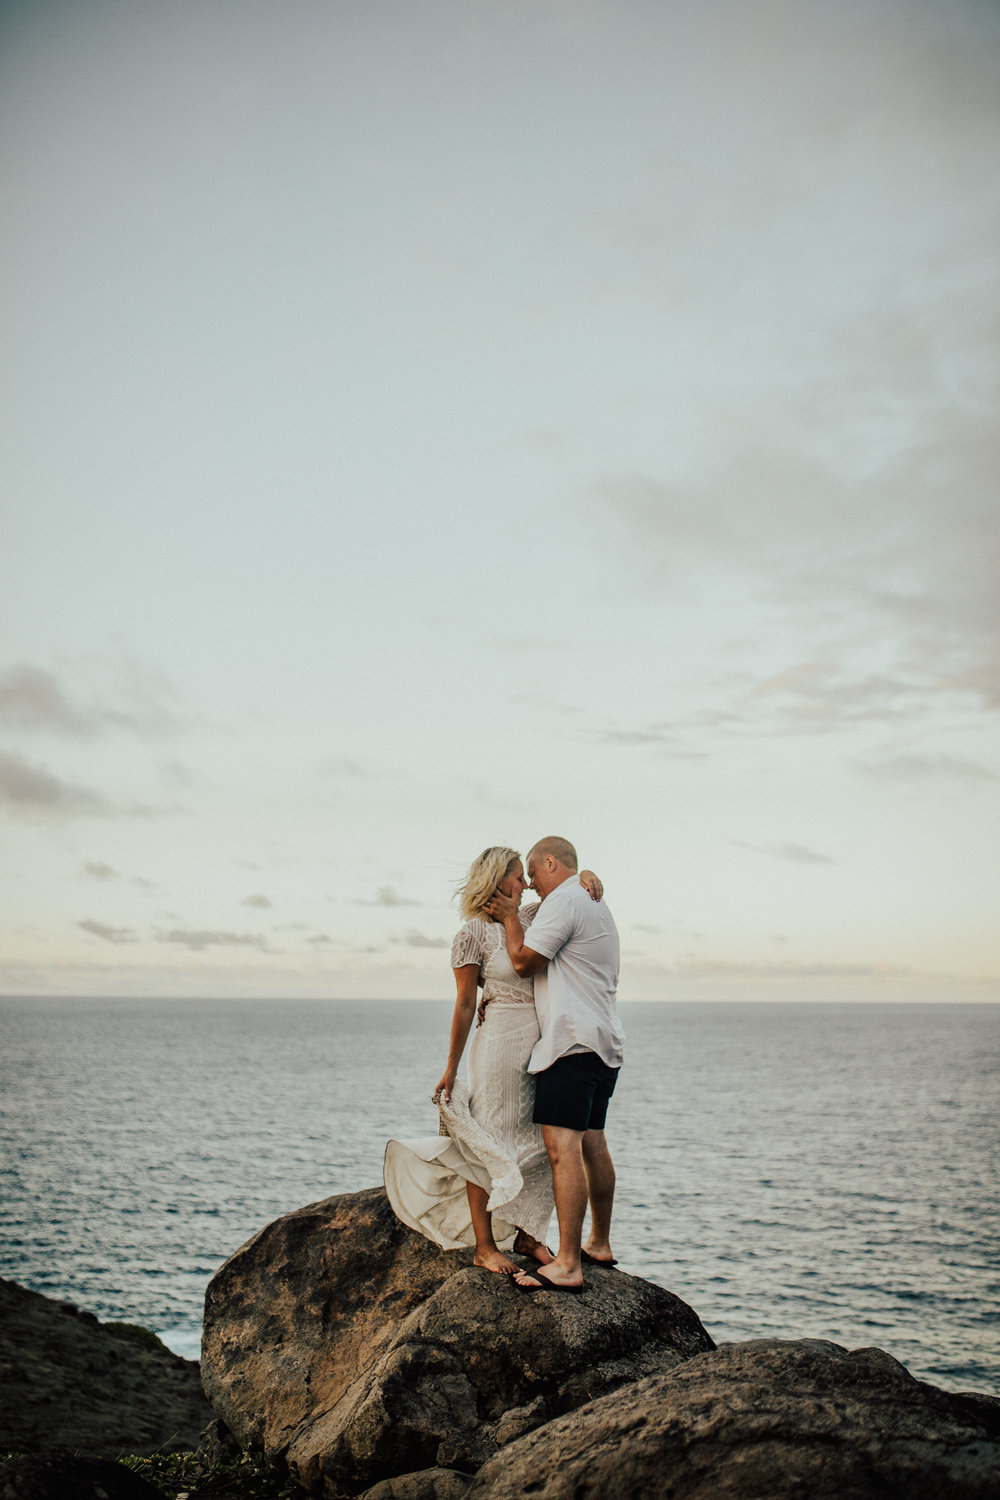 kauai-intimate-elopement-adventurous-destination-photographer-lindsey-roman